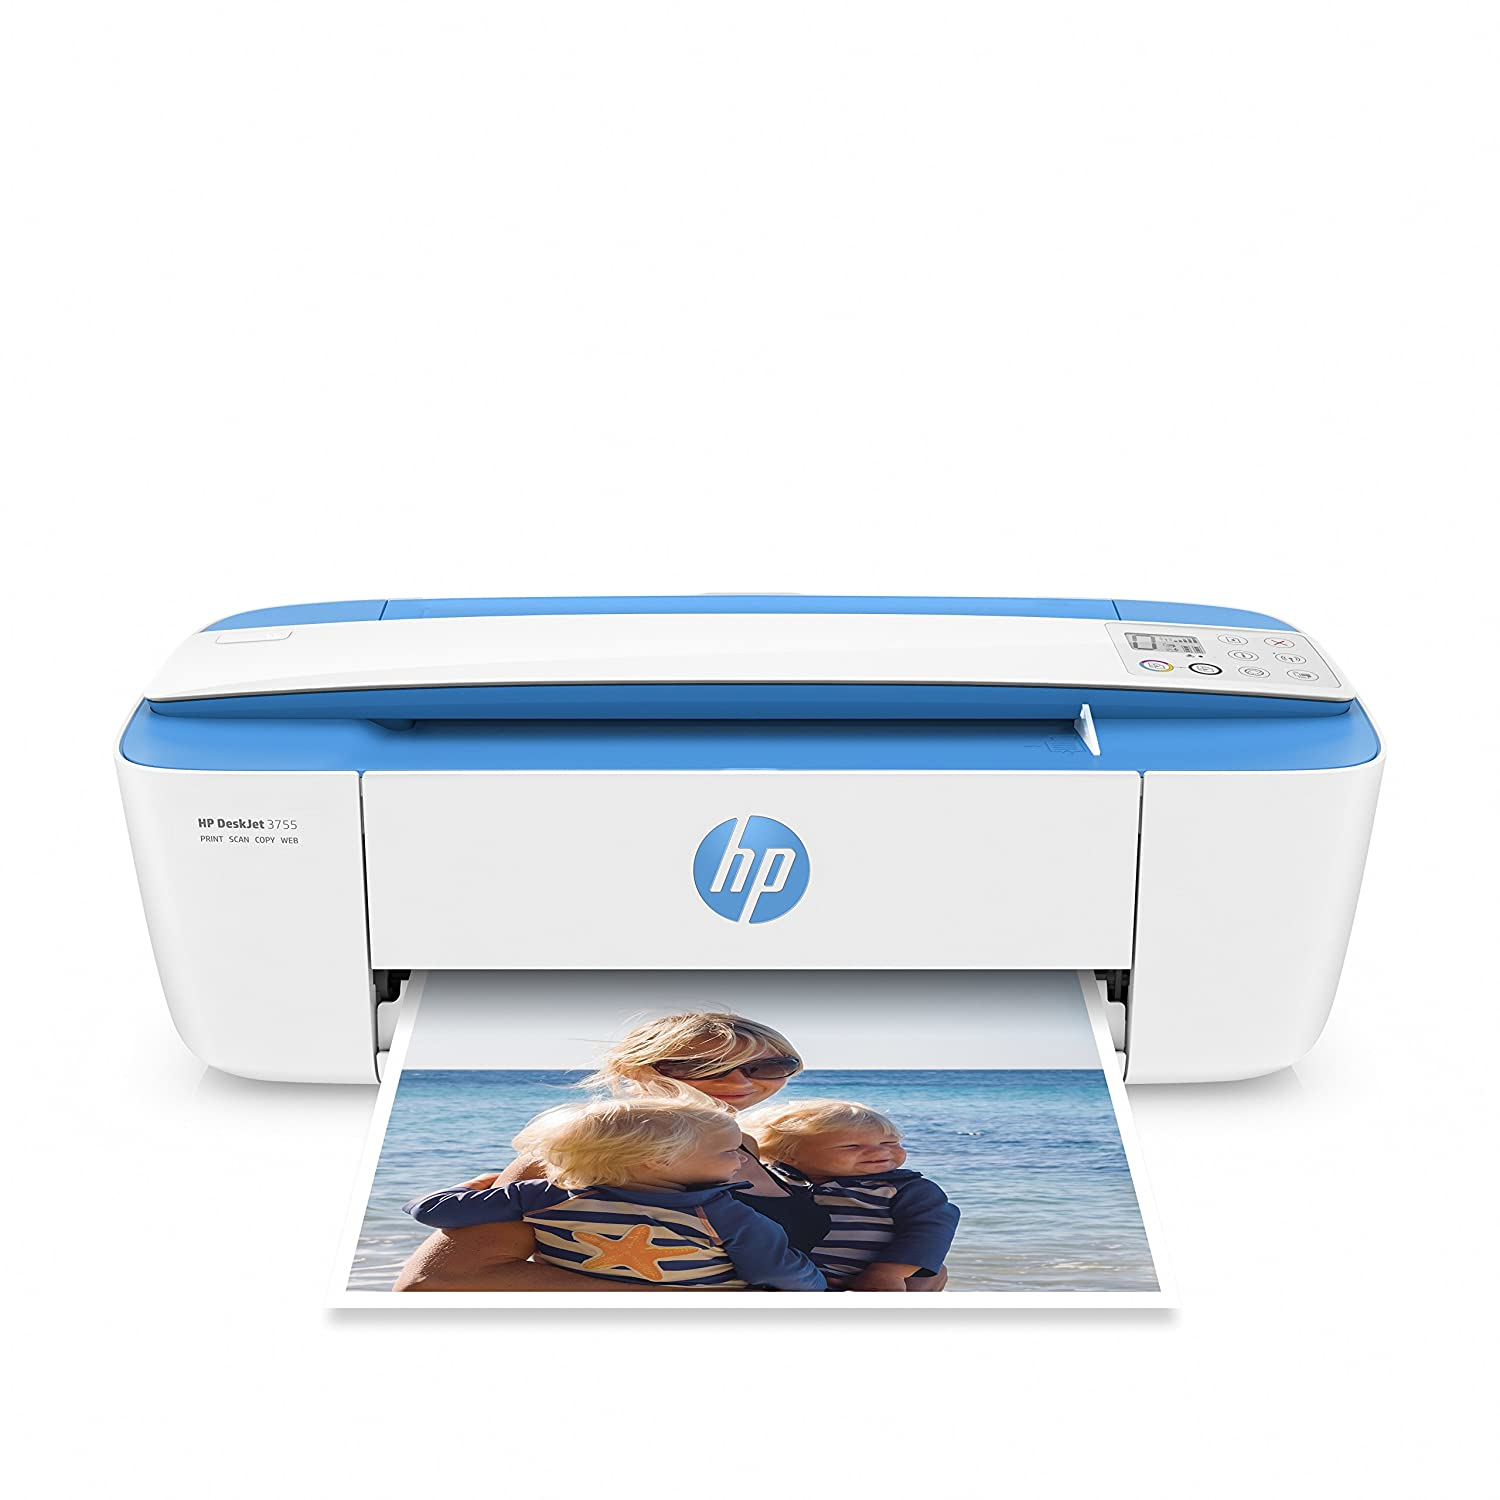 Amazon.com: HP DeskJet 3755 Compact All-in-One Wireless Printer with Mobile  Printing, HP Instant Ink & Amazon Dash Replenishment ready - Blue Accent ...